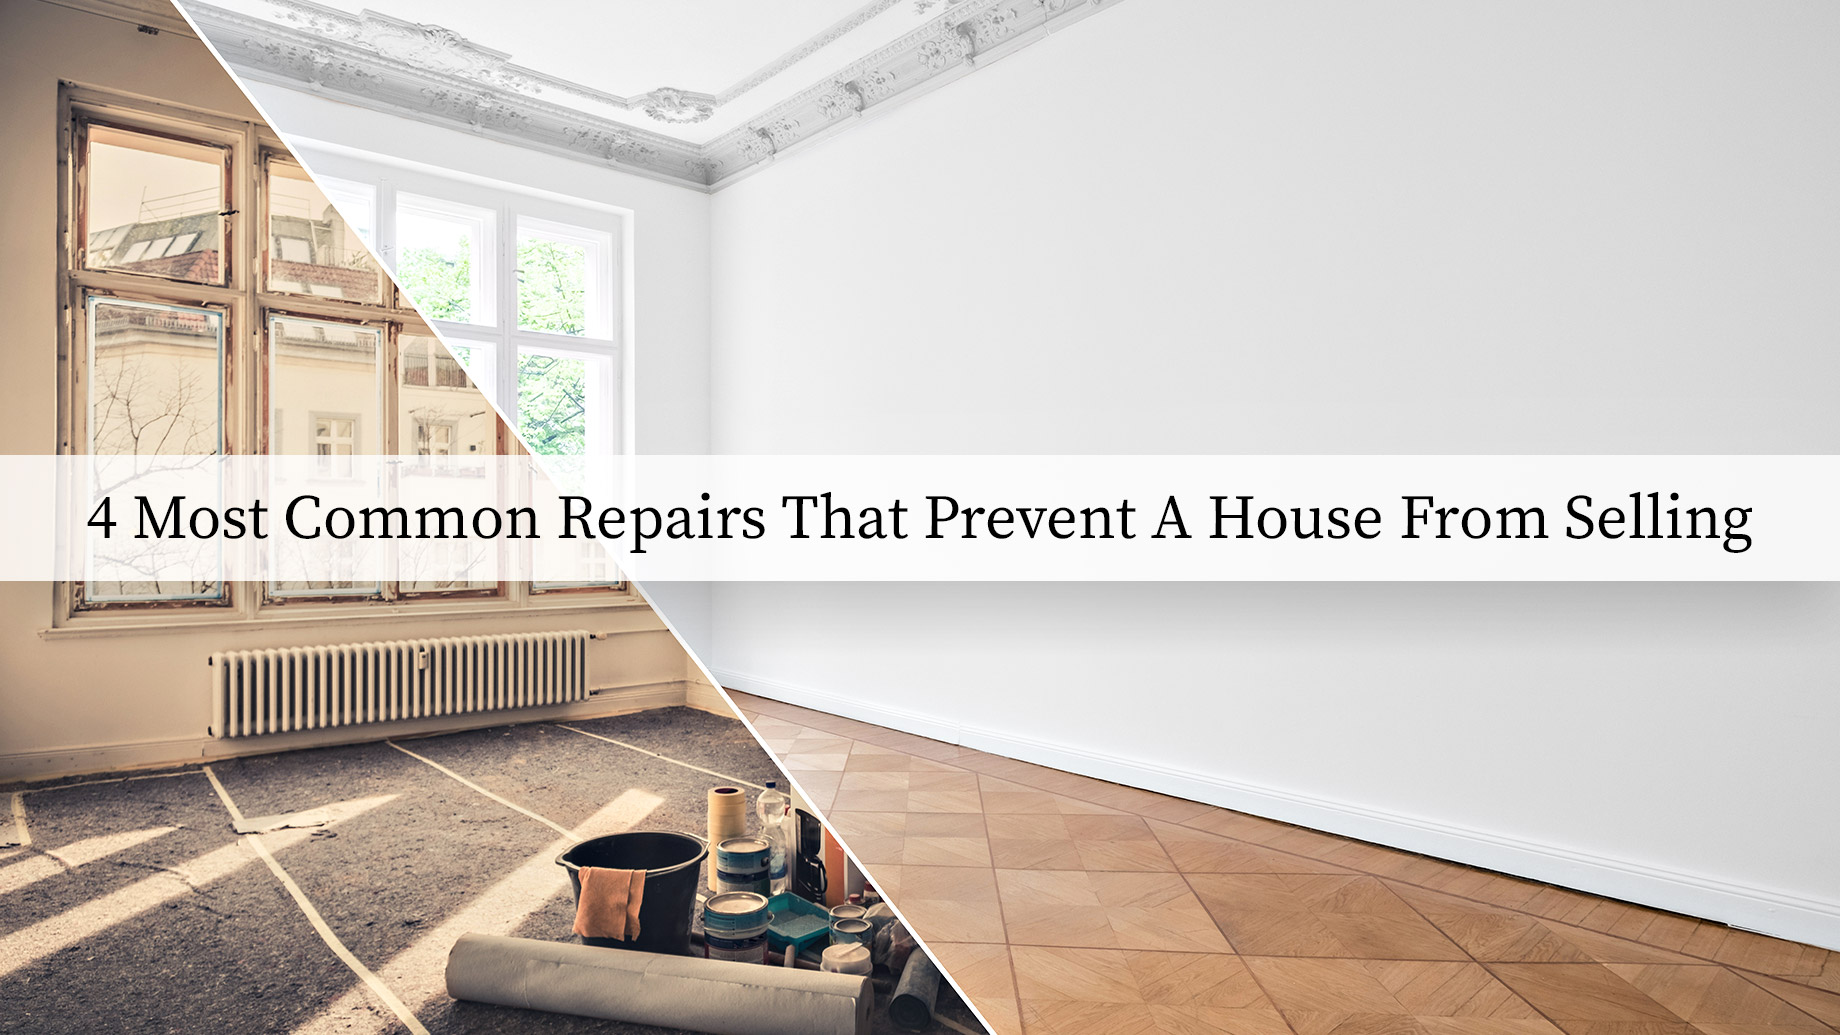 4 Most Common Repairs That Prevent A House From Selling